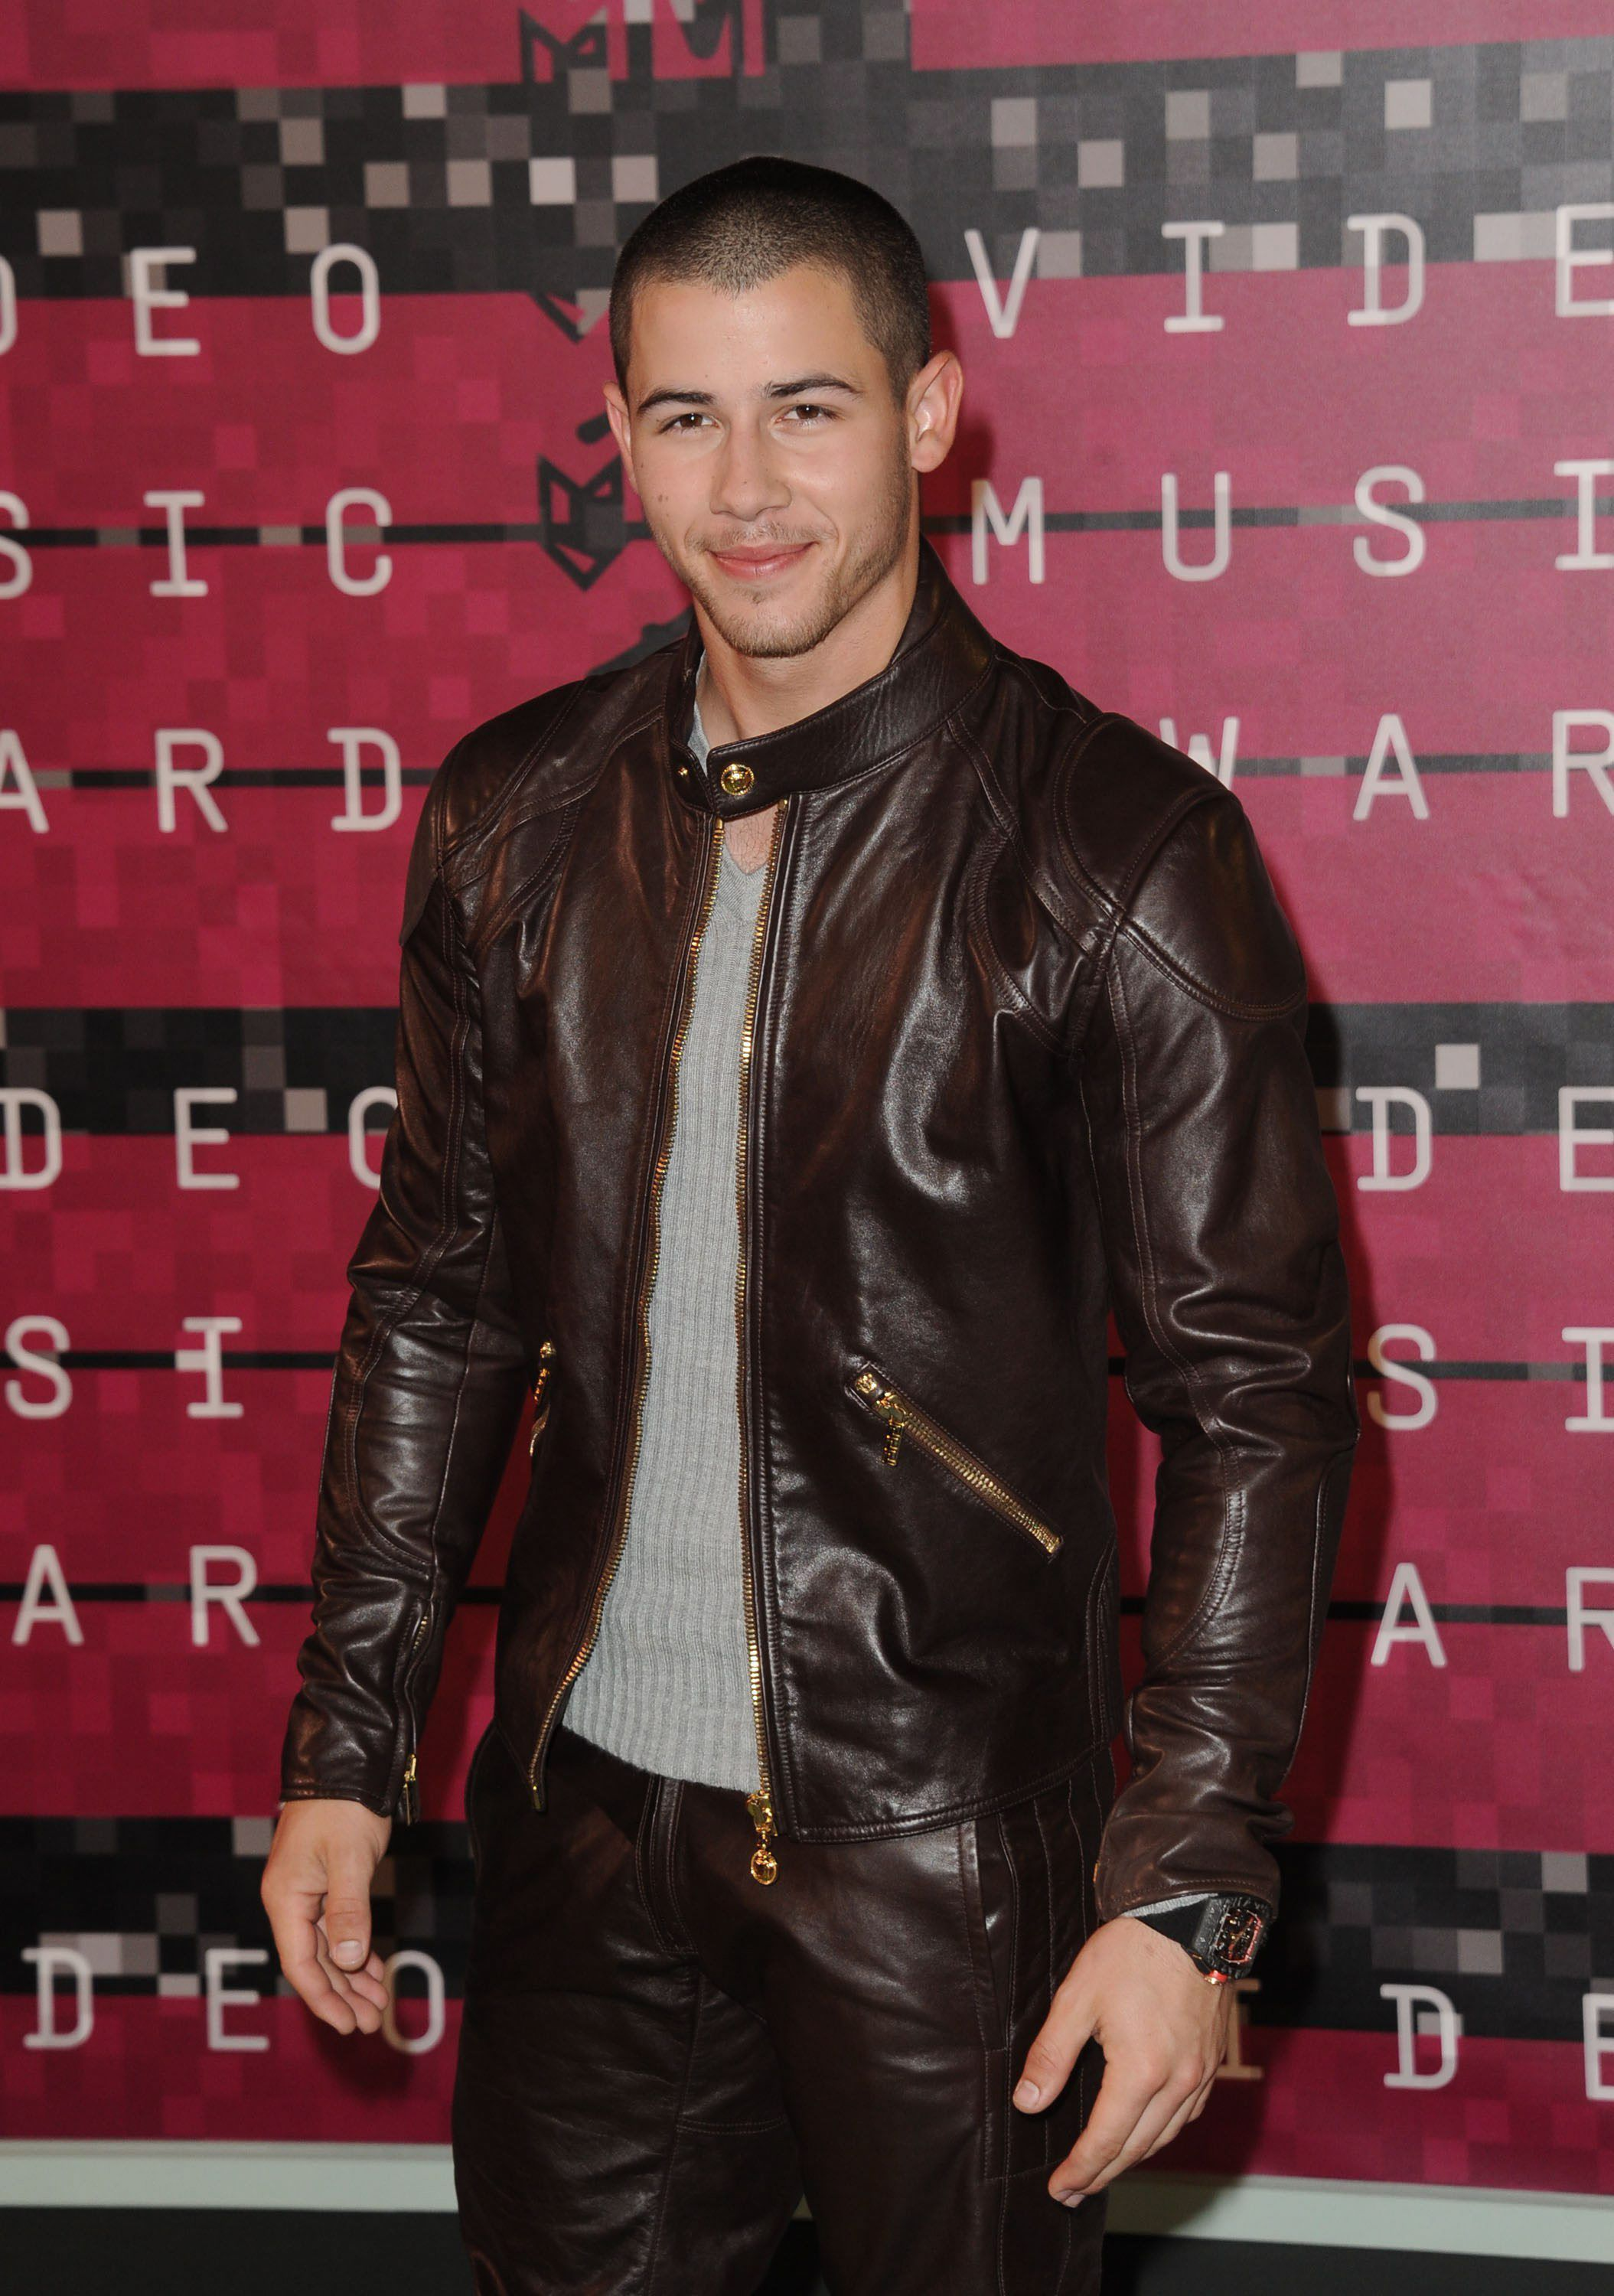 10 Things You Didn't Know About Nick Jonas - Fame10